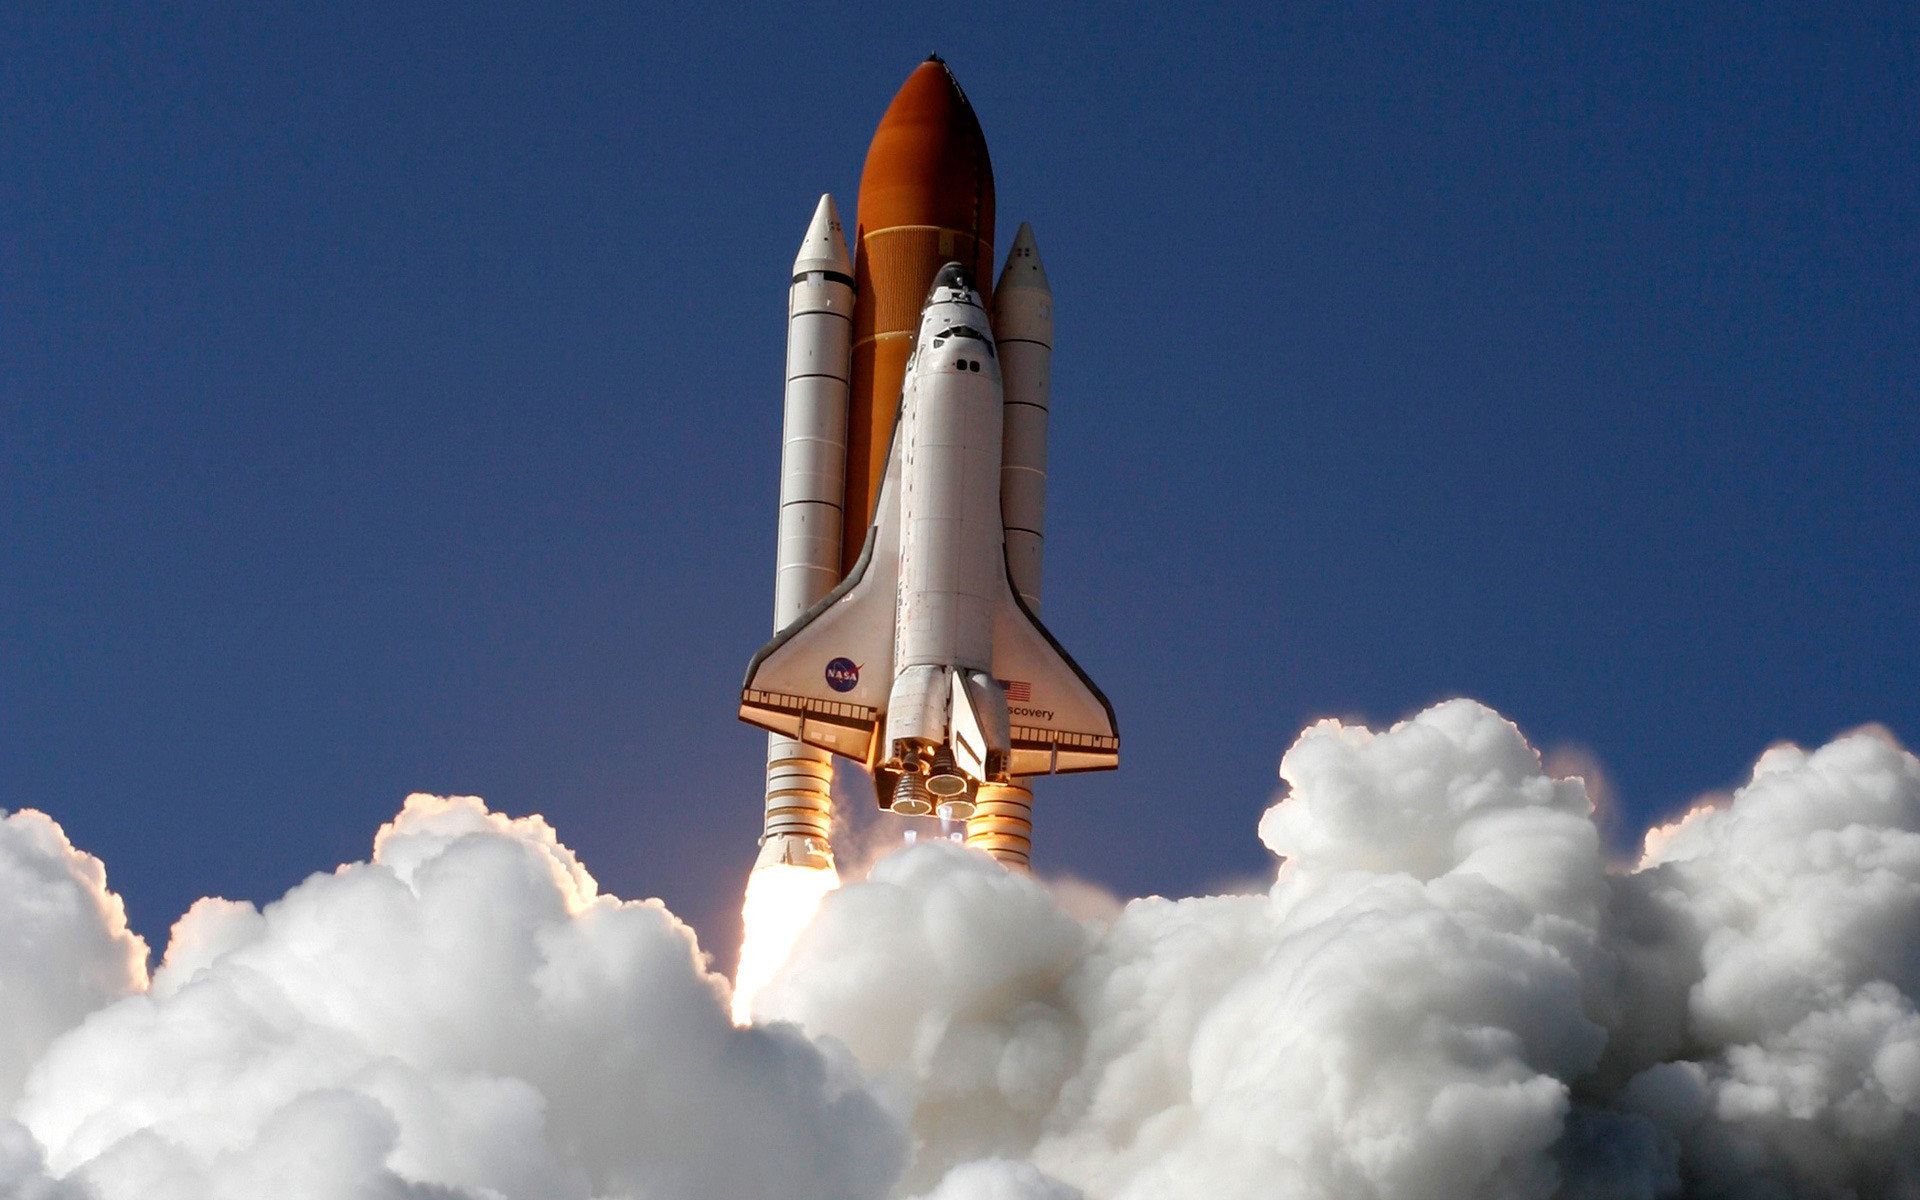 Why was the Space Shuttle retired?